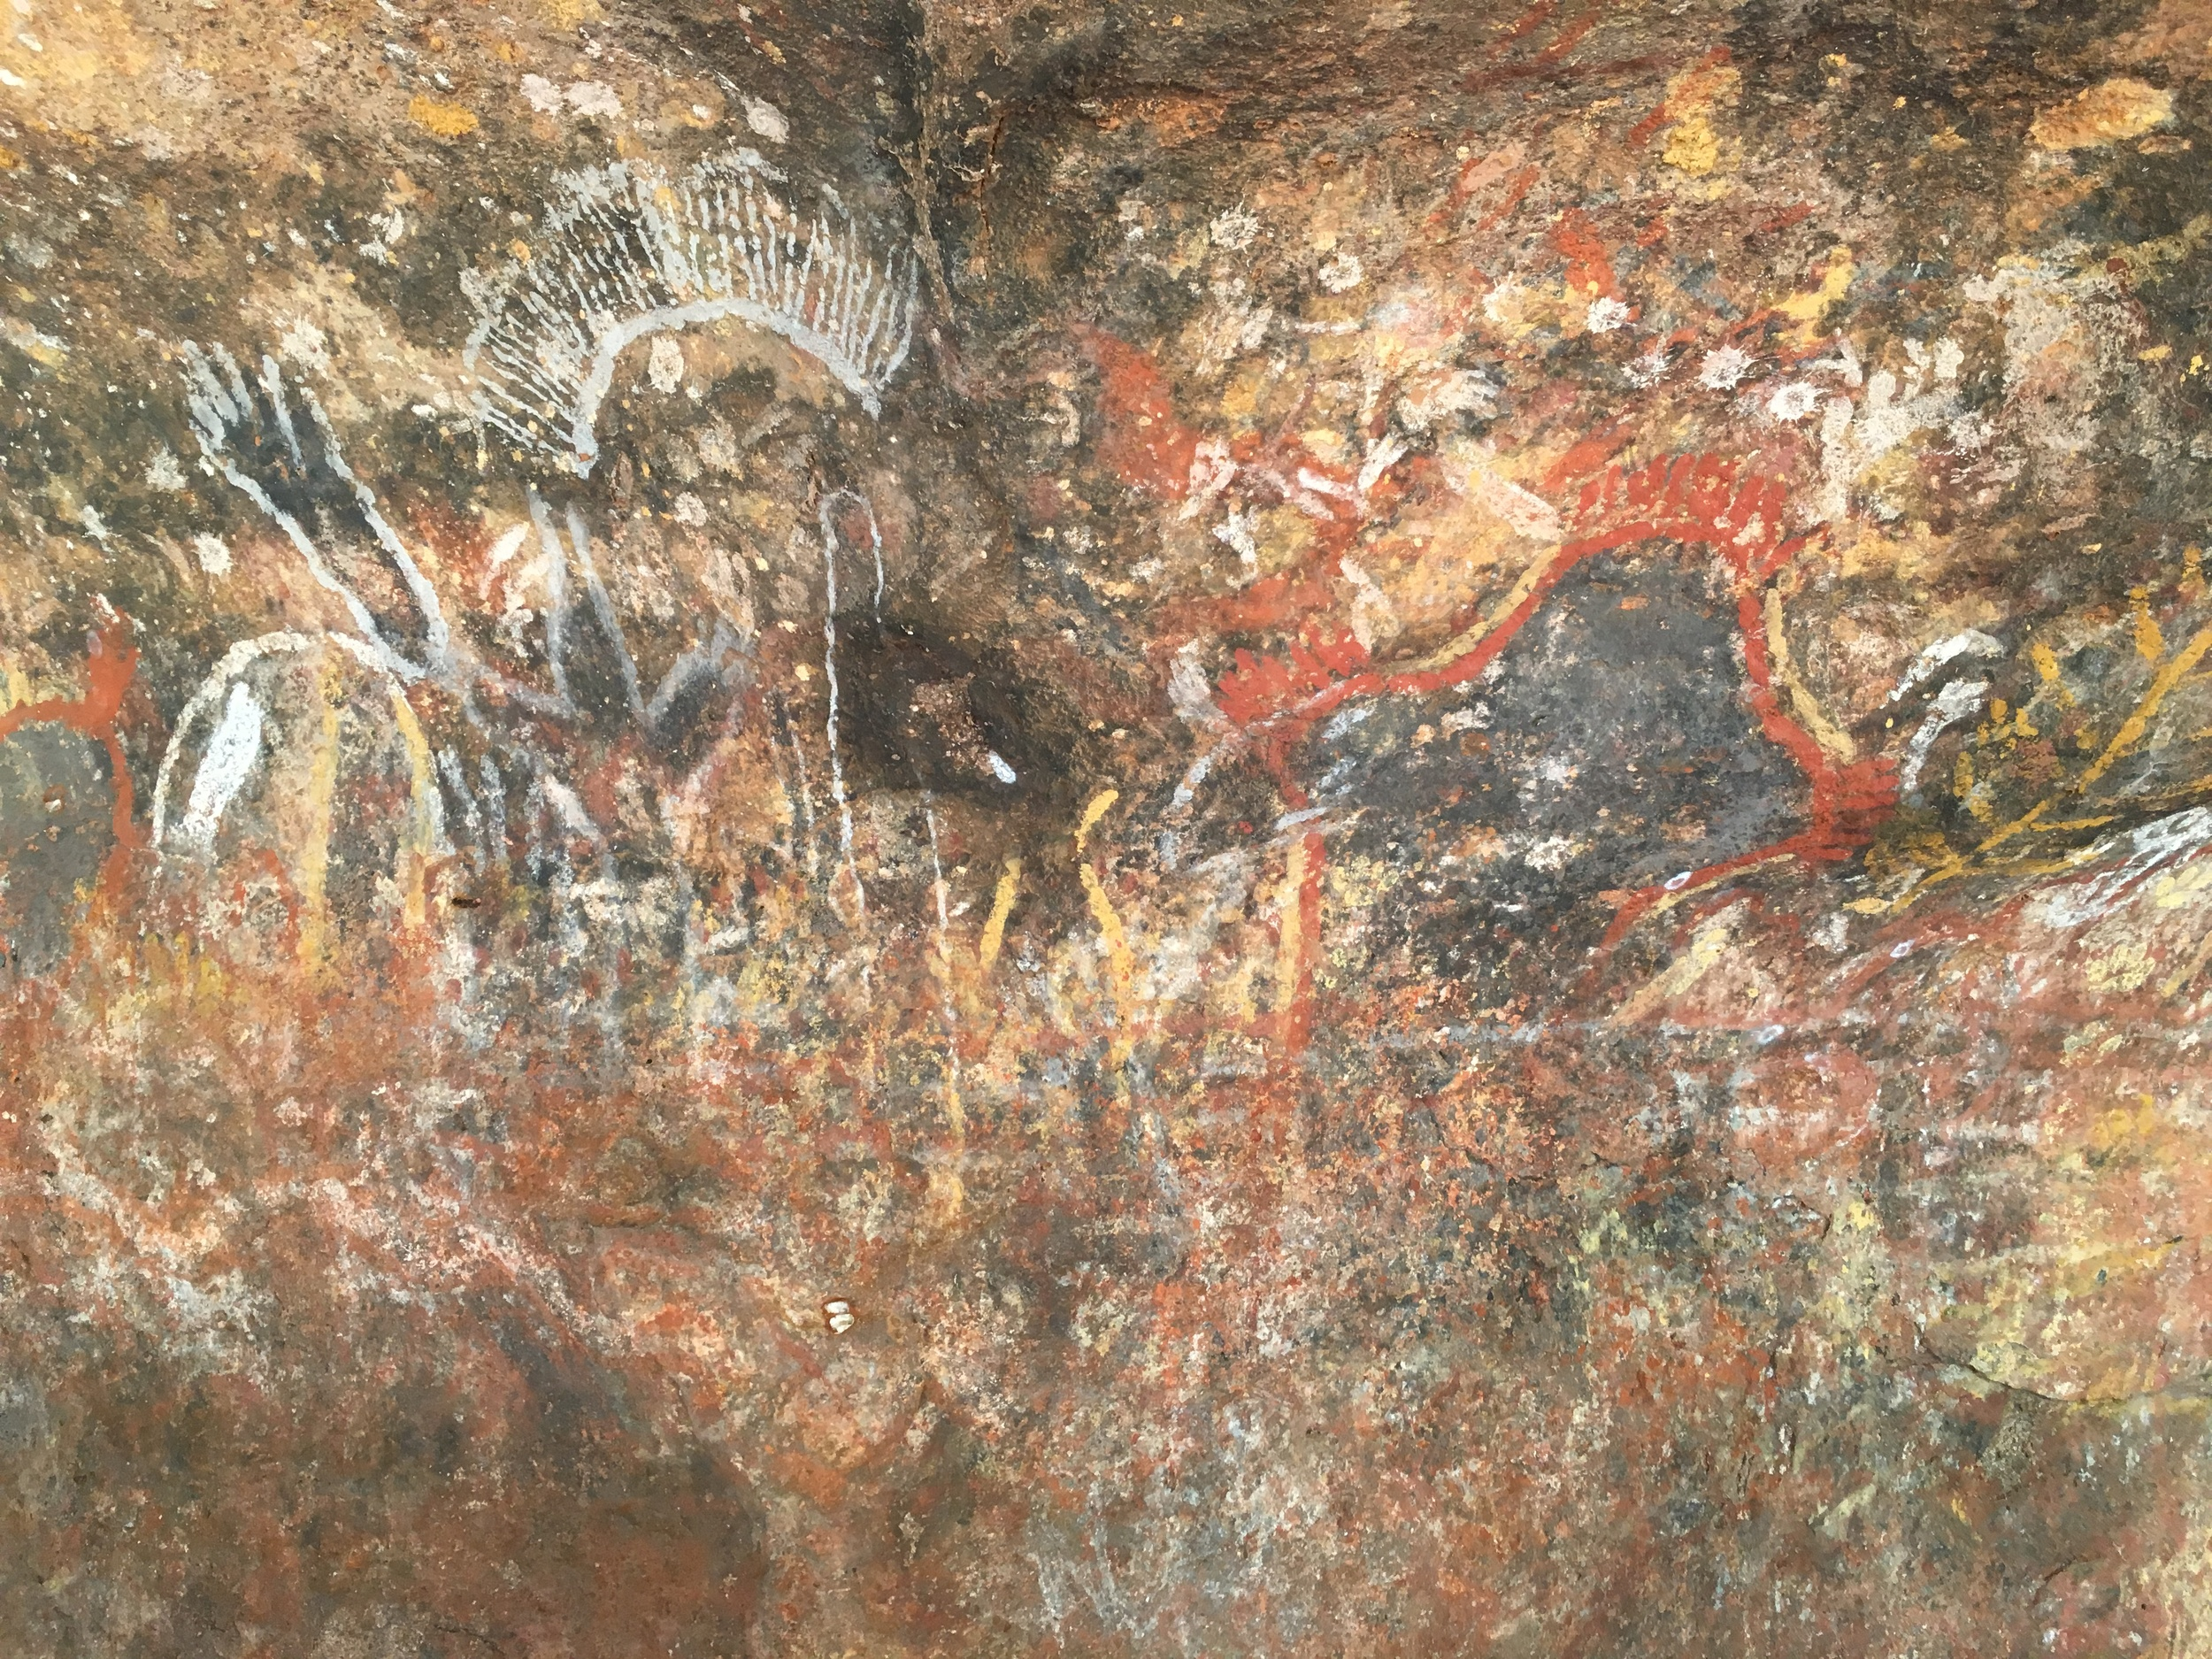 Aboriginal cave drawings